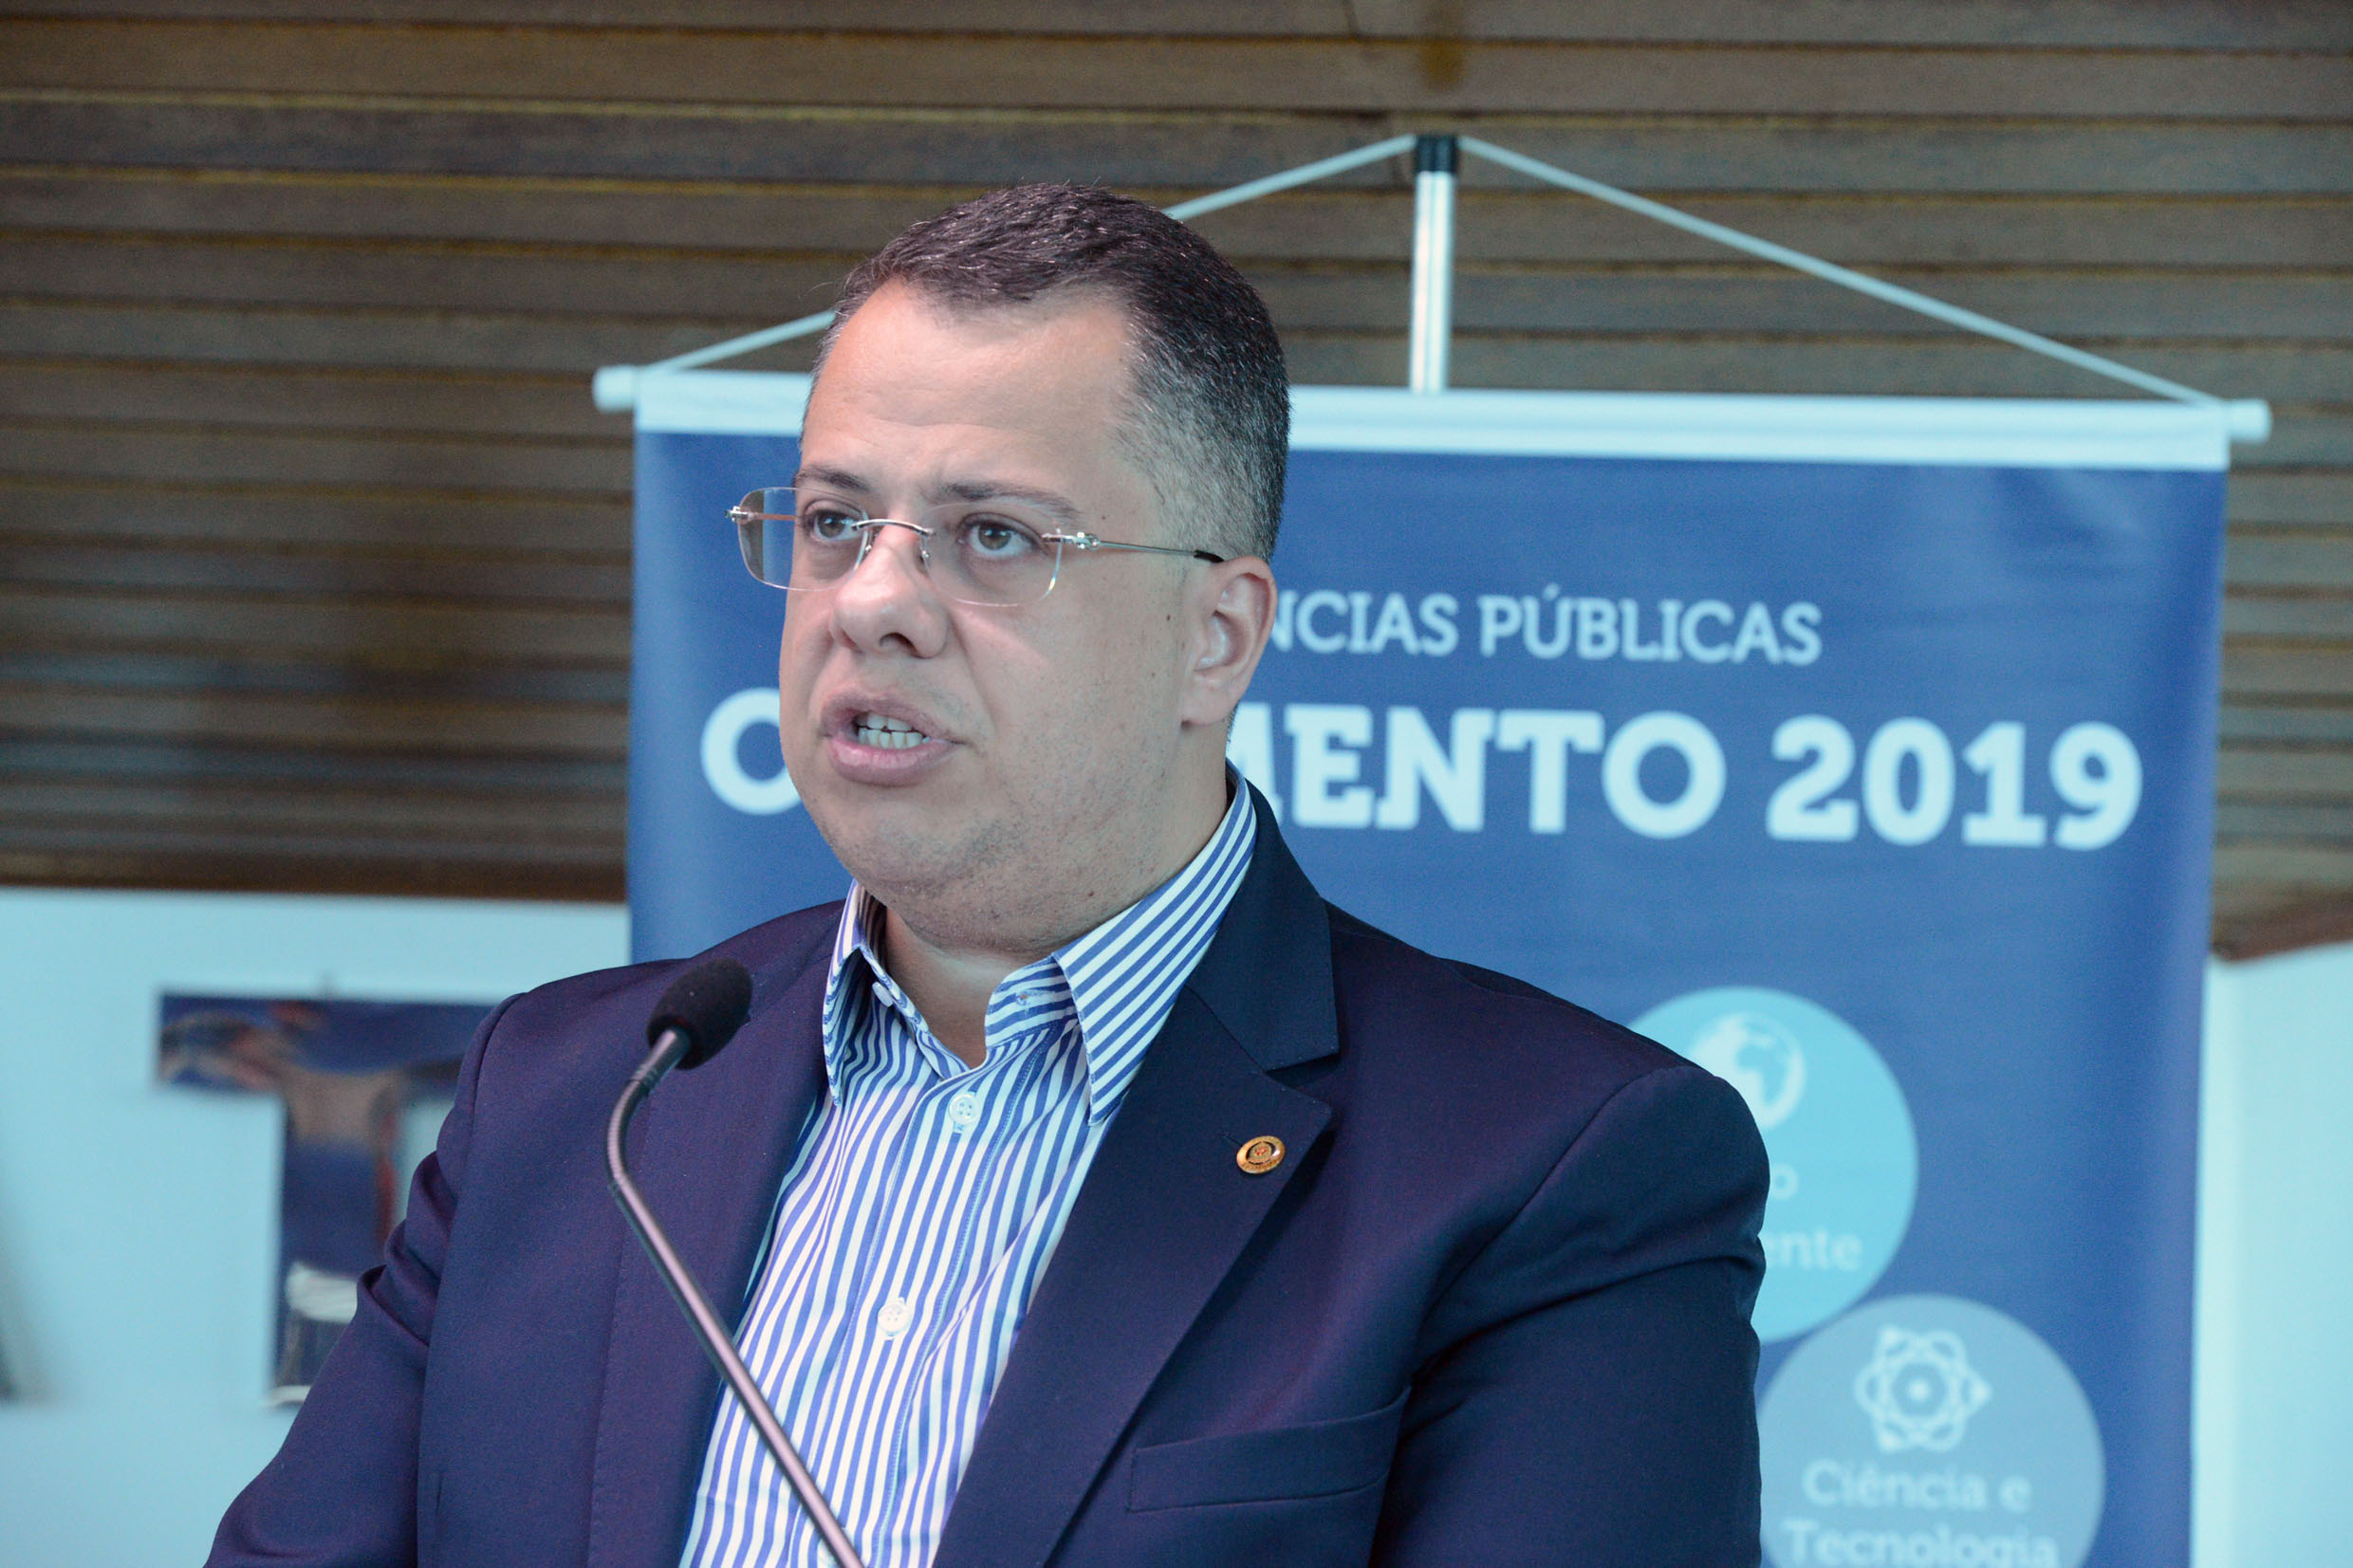 Wellington Moura<a style='float:right' href='https://www3.al.sp.gov.br/repositorio/noticia/N-06-2018/fg224955.jpg' target=_blank><img src='/_img/material-file-download-white.png' width='14px' alt='Clique para baixar a imagem'></a>